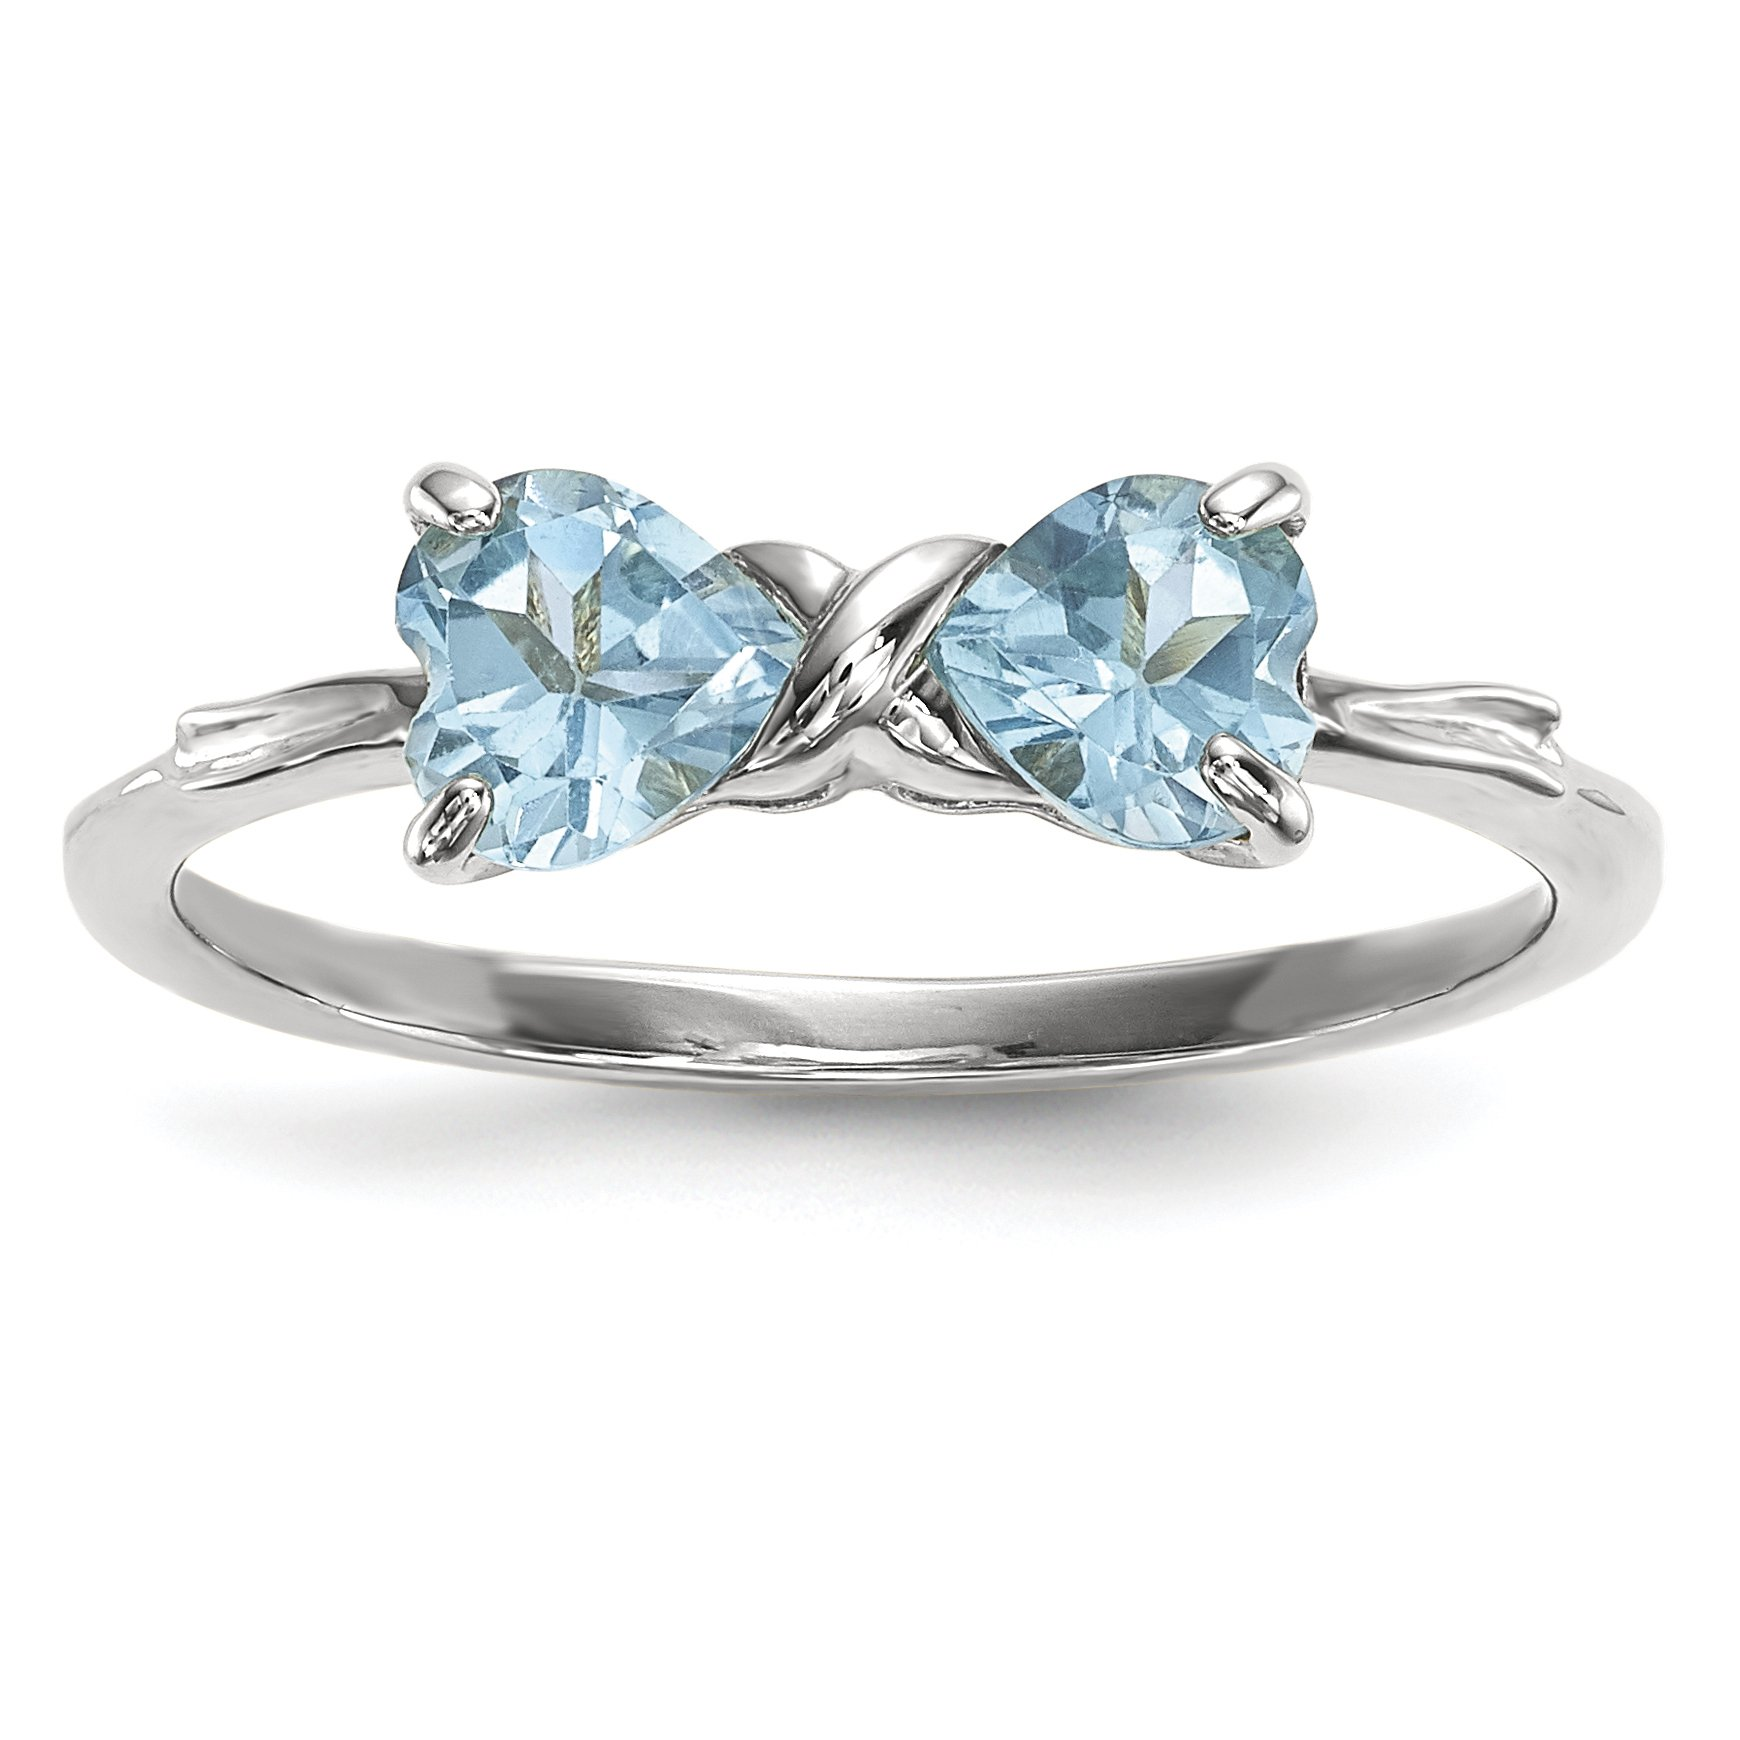 ICE CARATS 14k White Gold Swiss Blue Topaz Bow Band Ring Size 7.00 Birthstone December Set Style Fine Jewelry Gift For Women Heart